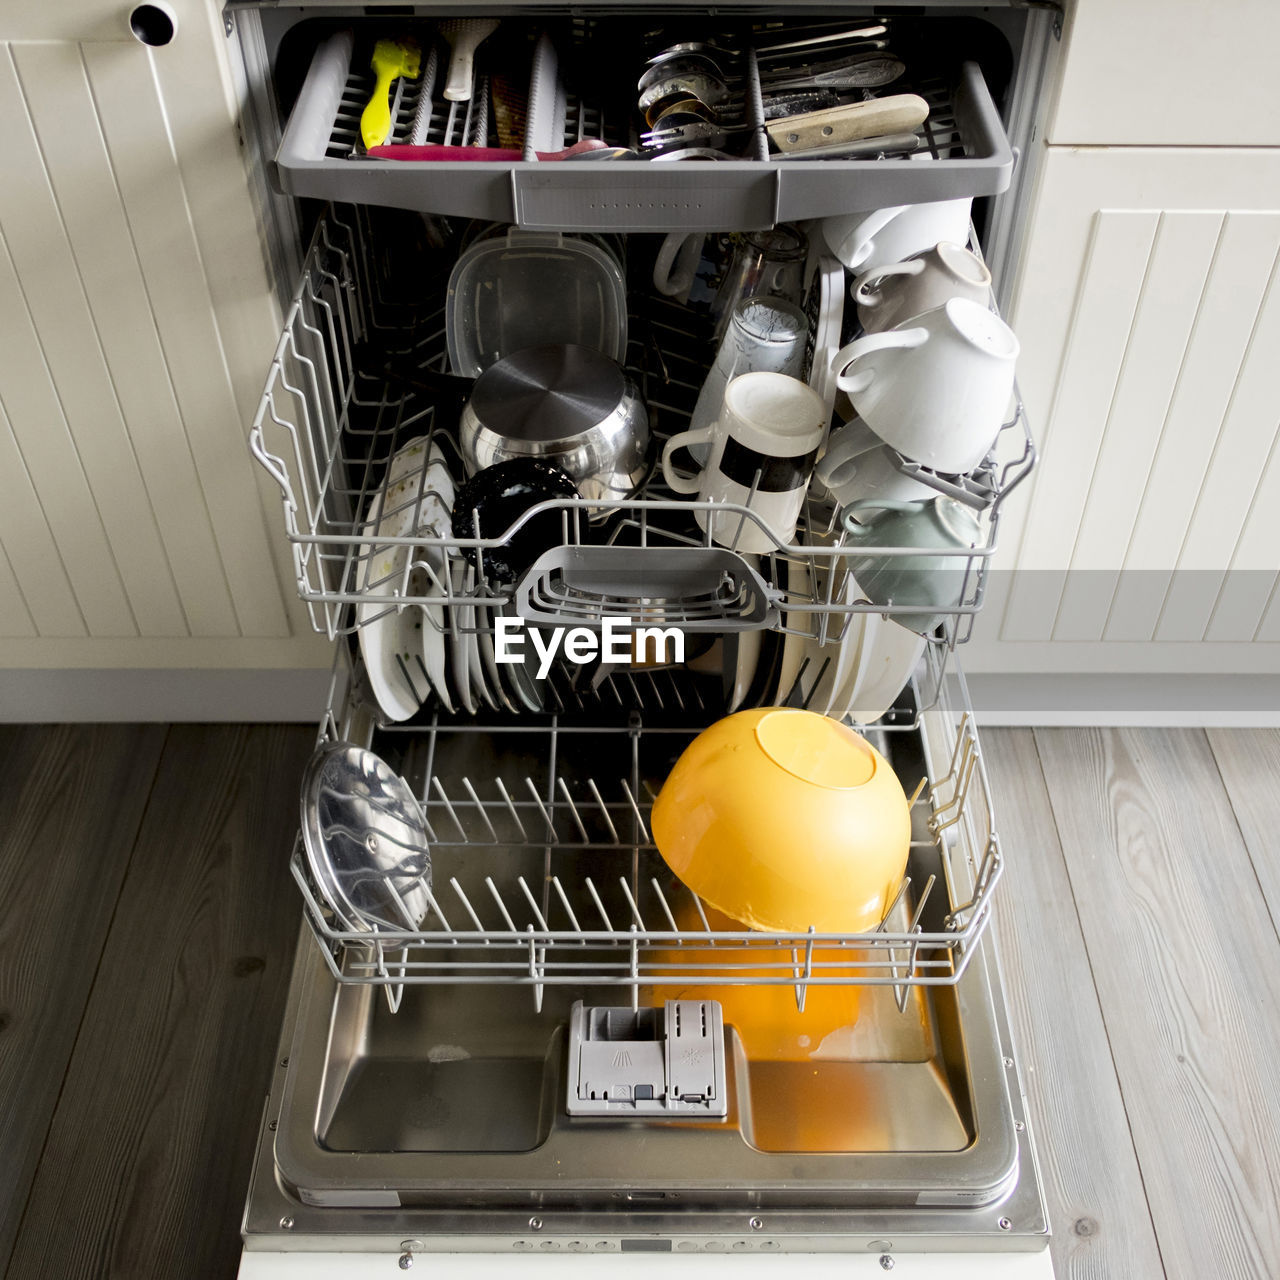 indoors, appliance, kitchen, domestic room, domestic kitchen, home, household equipment, kitchen utensil, stove, no people, still life, food and drink, high angle view, home interior, egg, lifestyles, machinery, rack, container, close-up